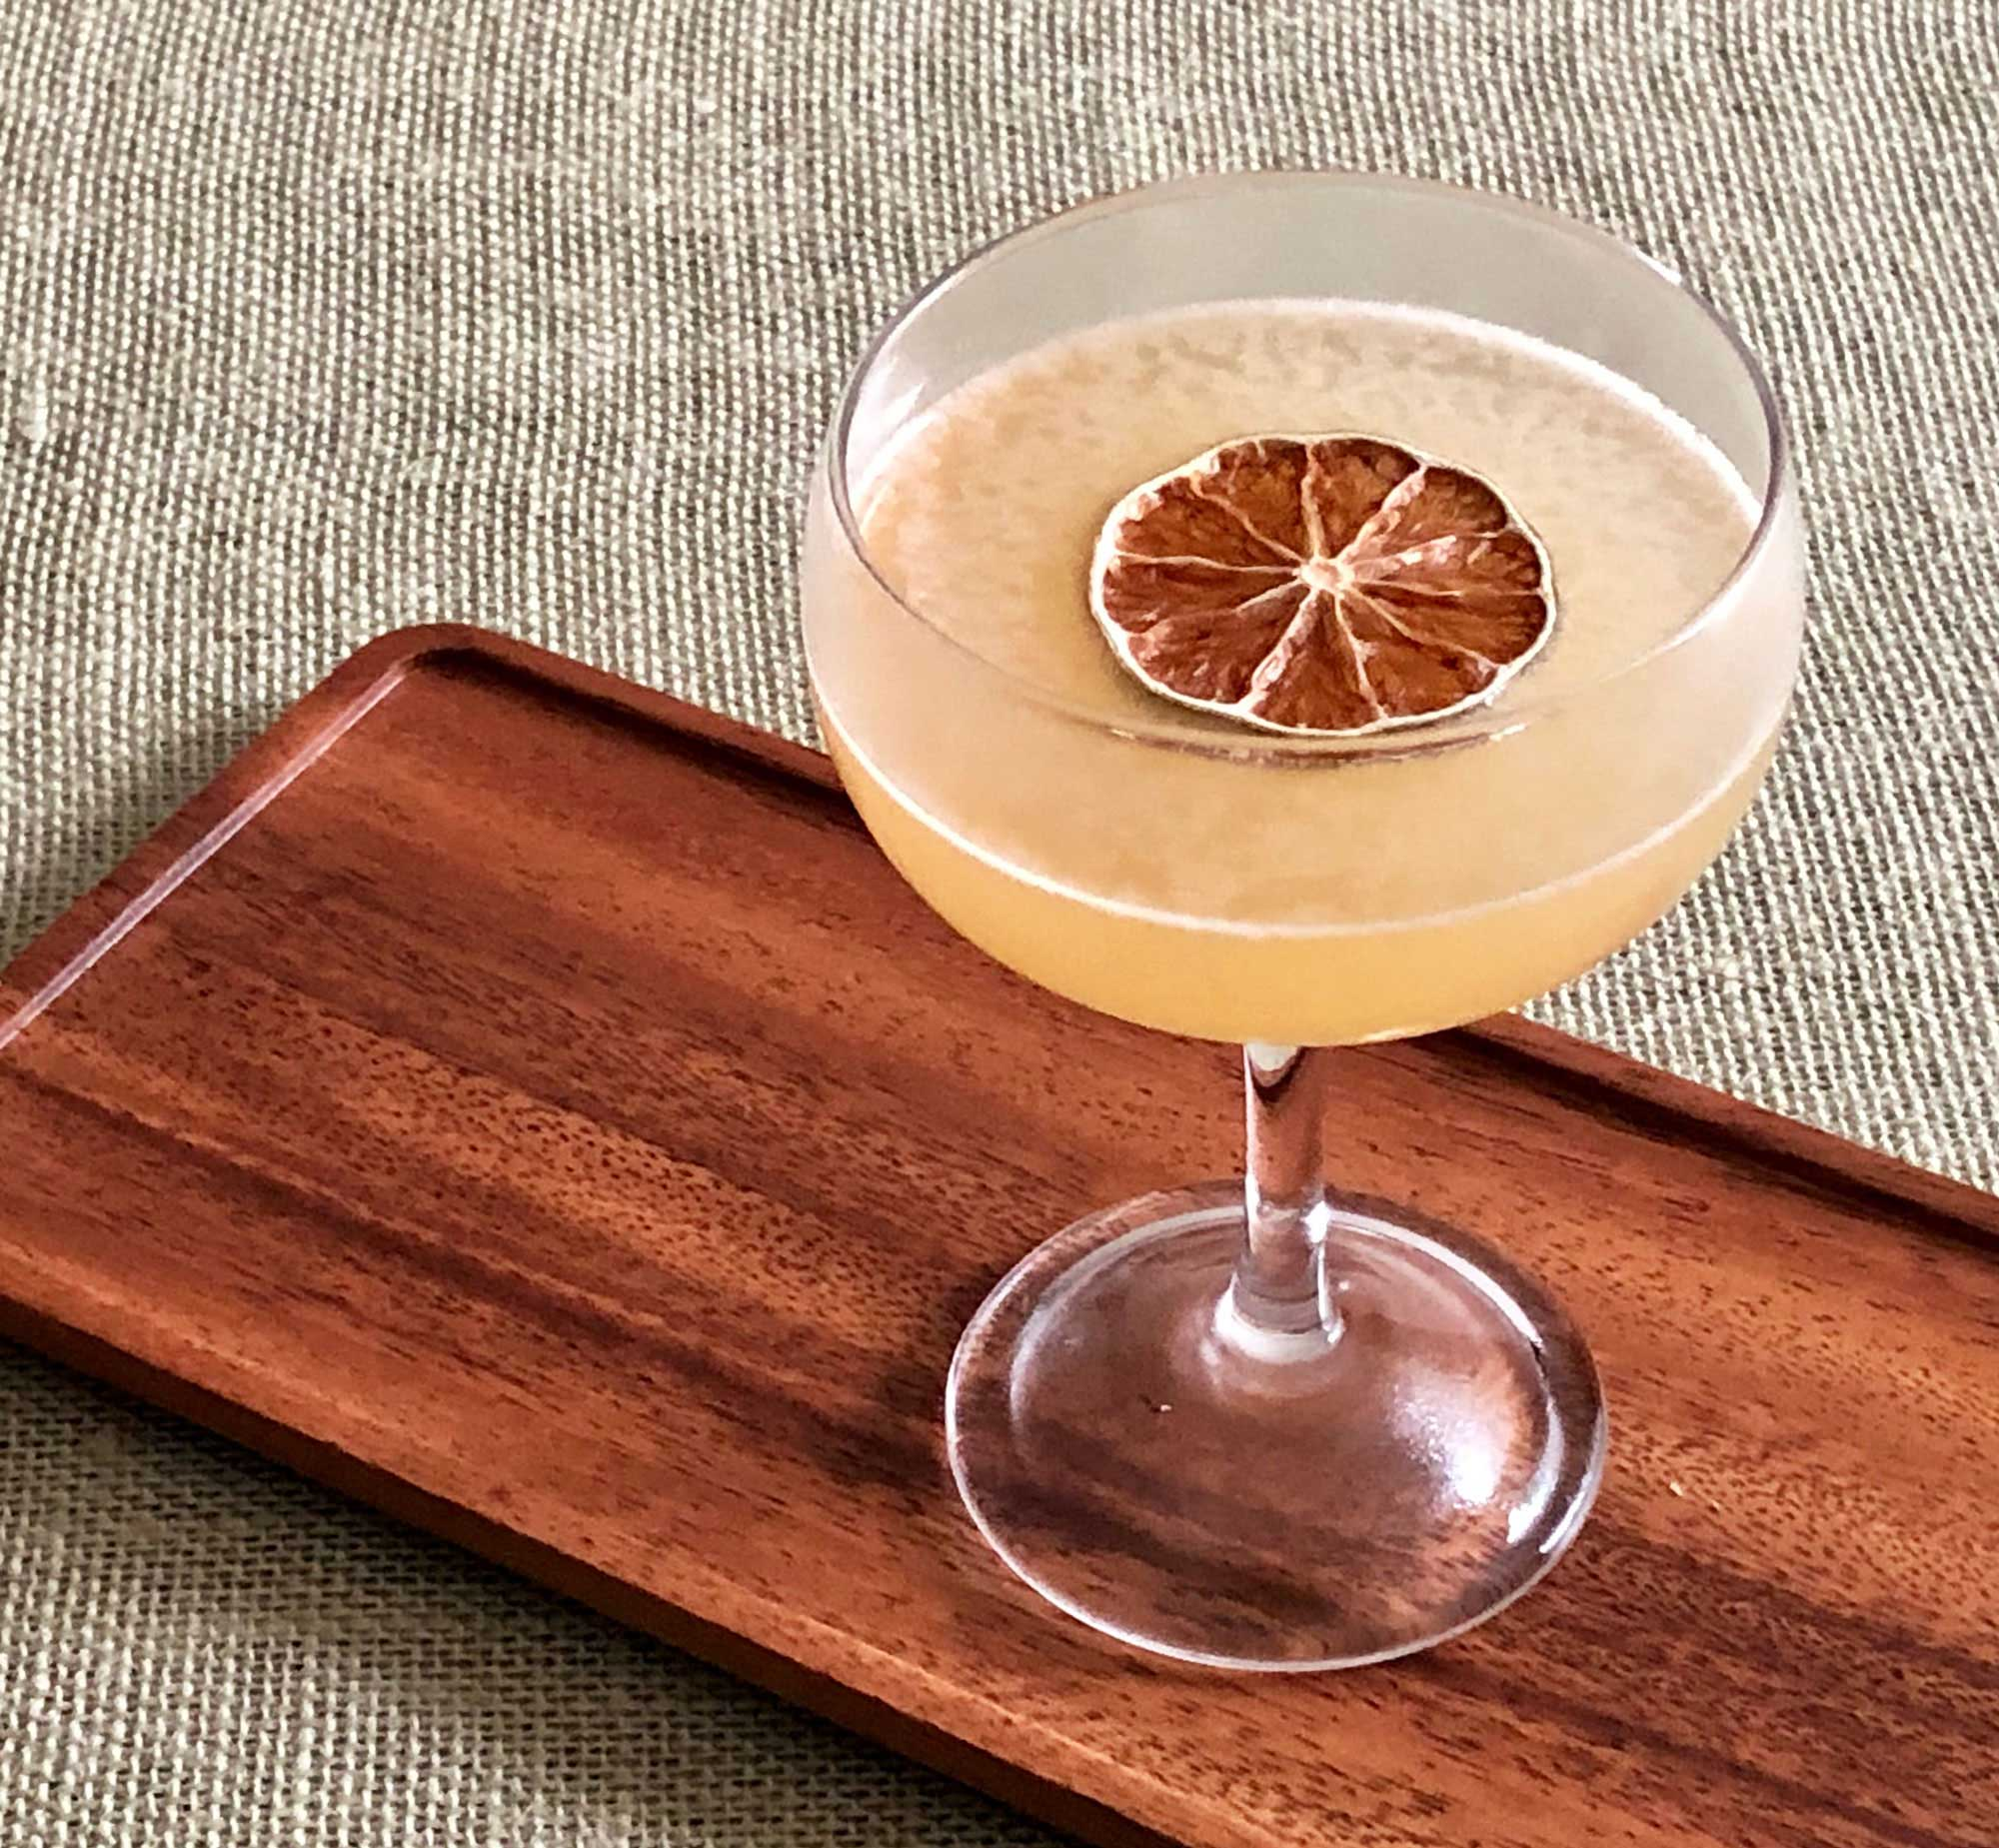 An example of the To The Sun, the mixed drink (cocktail) featuring Smith & Cross Traditional Jamaica Rum, lime juice, Rothman & Winter Orchard Apricot Liqueur, John D. Taylor's Velvet Falernum, and Angostura bitters; photo by Lee Edwards